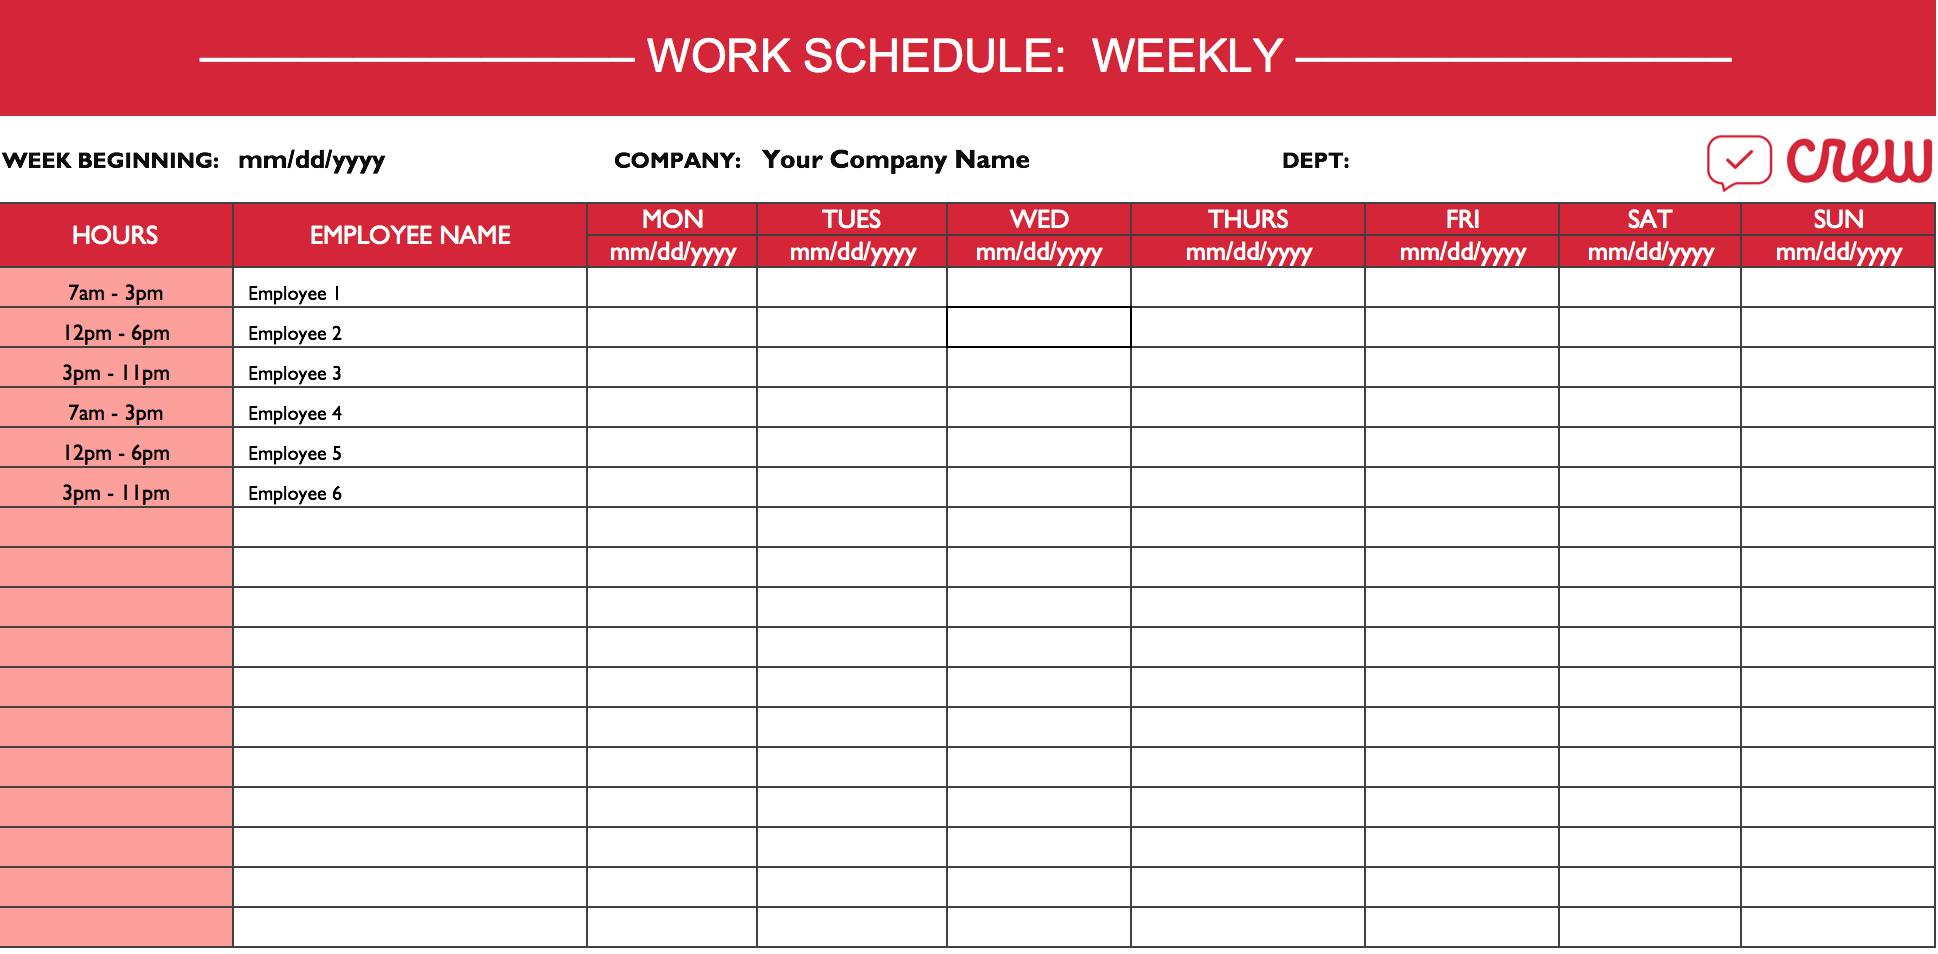 Weekly Work Schedule Template I Crew Inside Excel Spreadsheet For Scheduling Employee Shifts